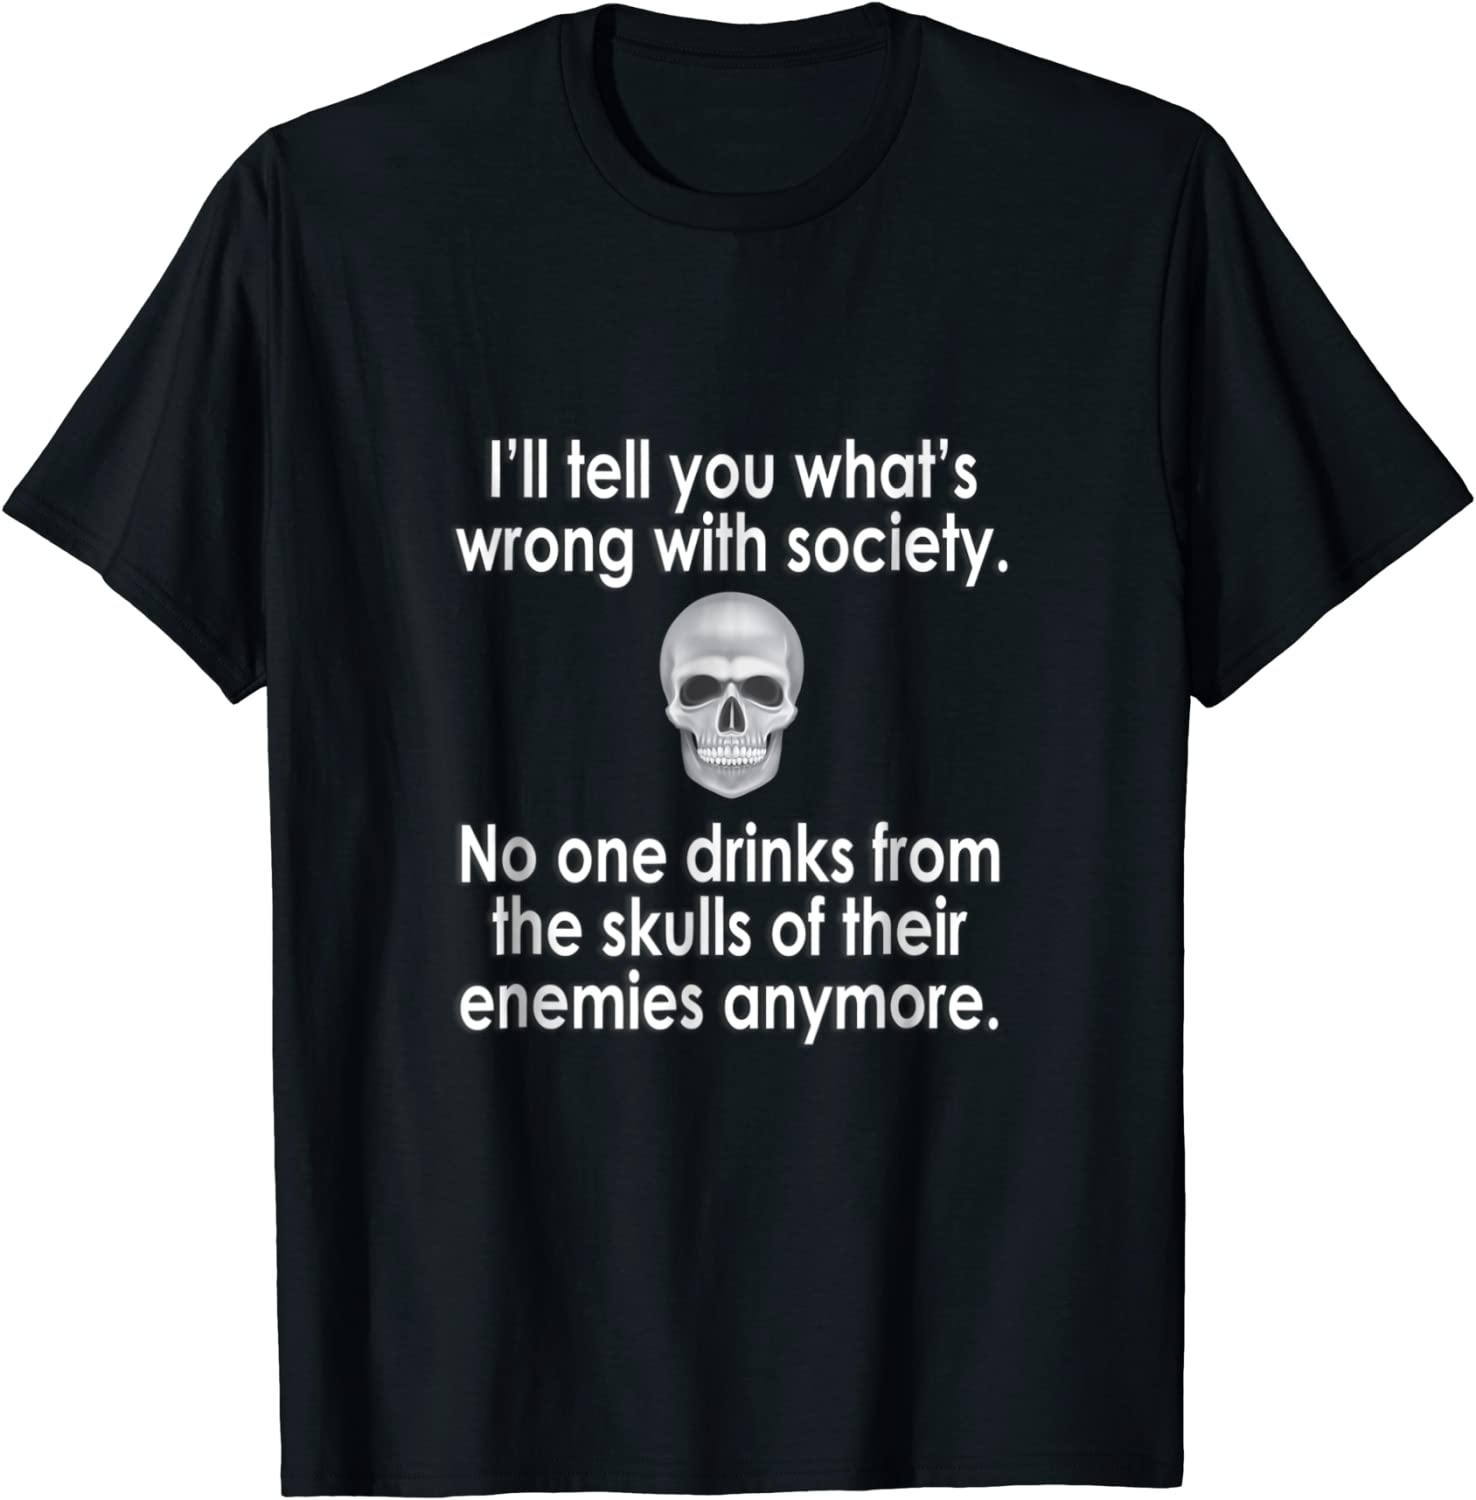 Drink From The Skull Of Your Enemies T Shirt Wrong Society